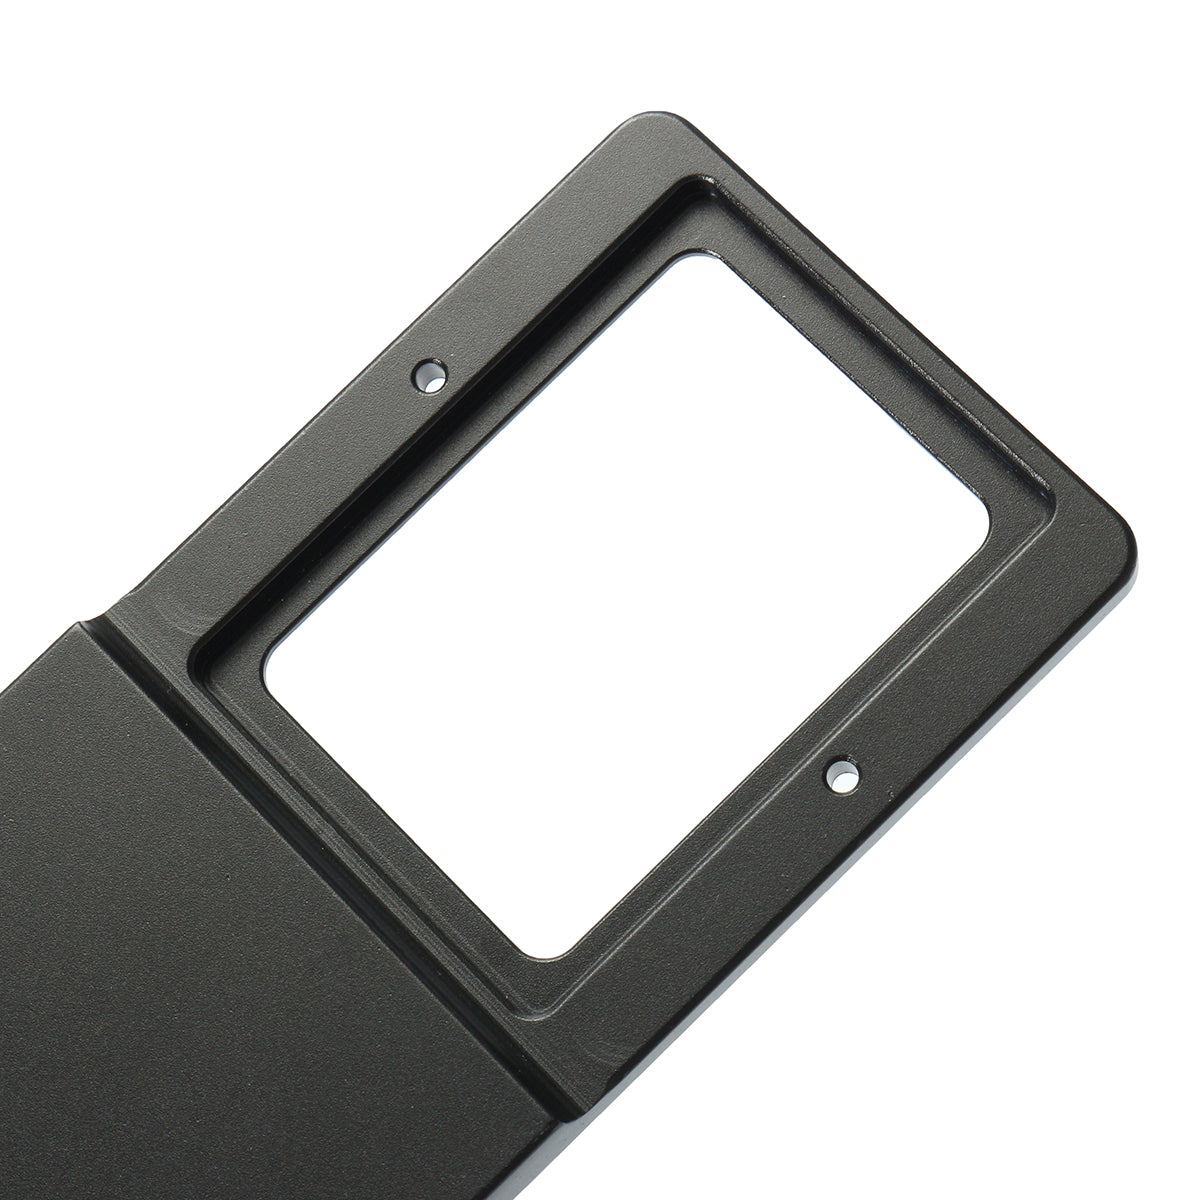 Mount Plate Adapter for Gopro Hero 4 3 Plus DJI Osmo Zhiyun Mobile Gimbal Handheld